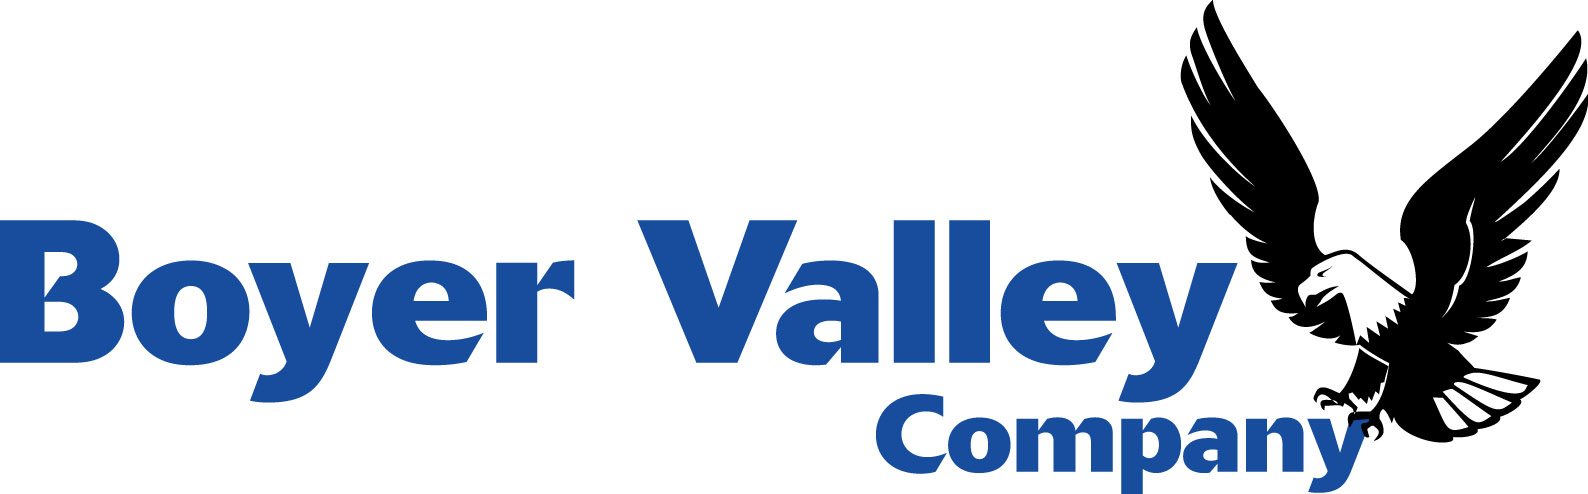 Boyer Valley logo.jpg